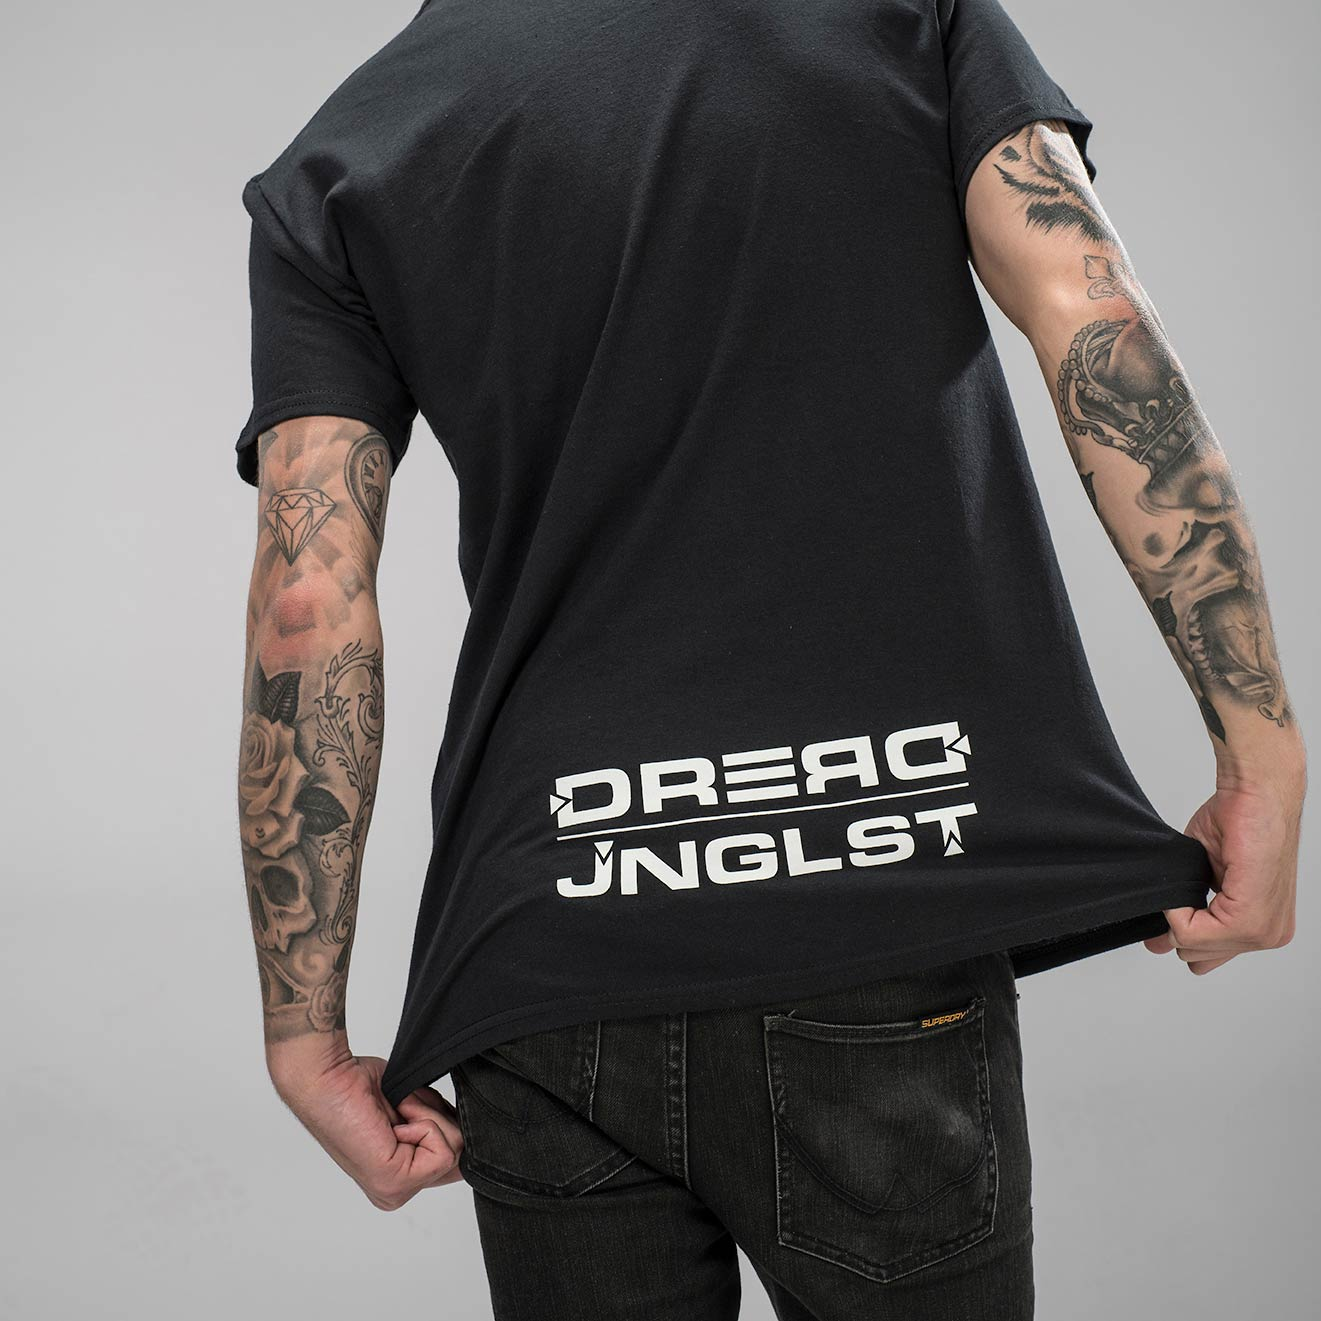 Dread Records Junglist Log on the back of our Tee